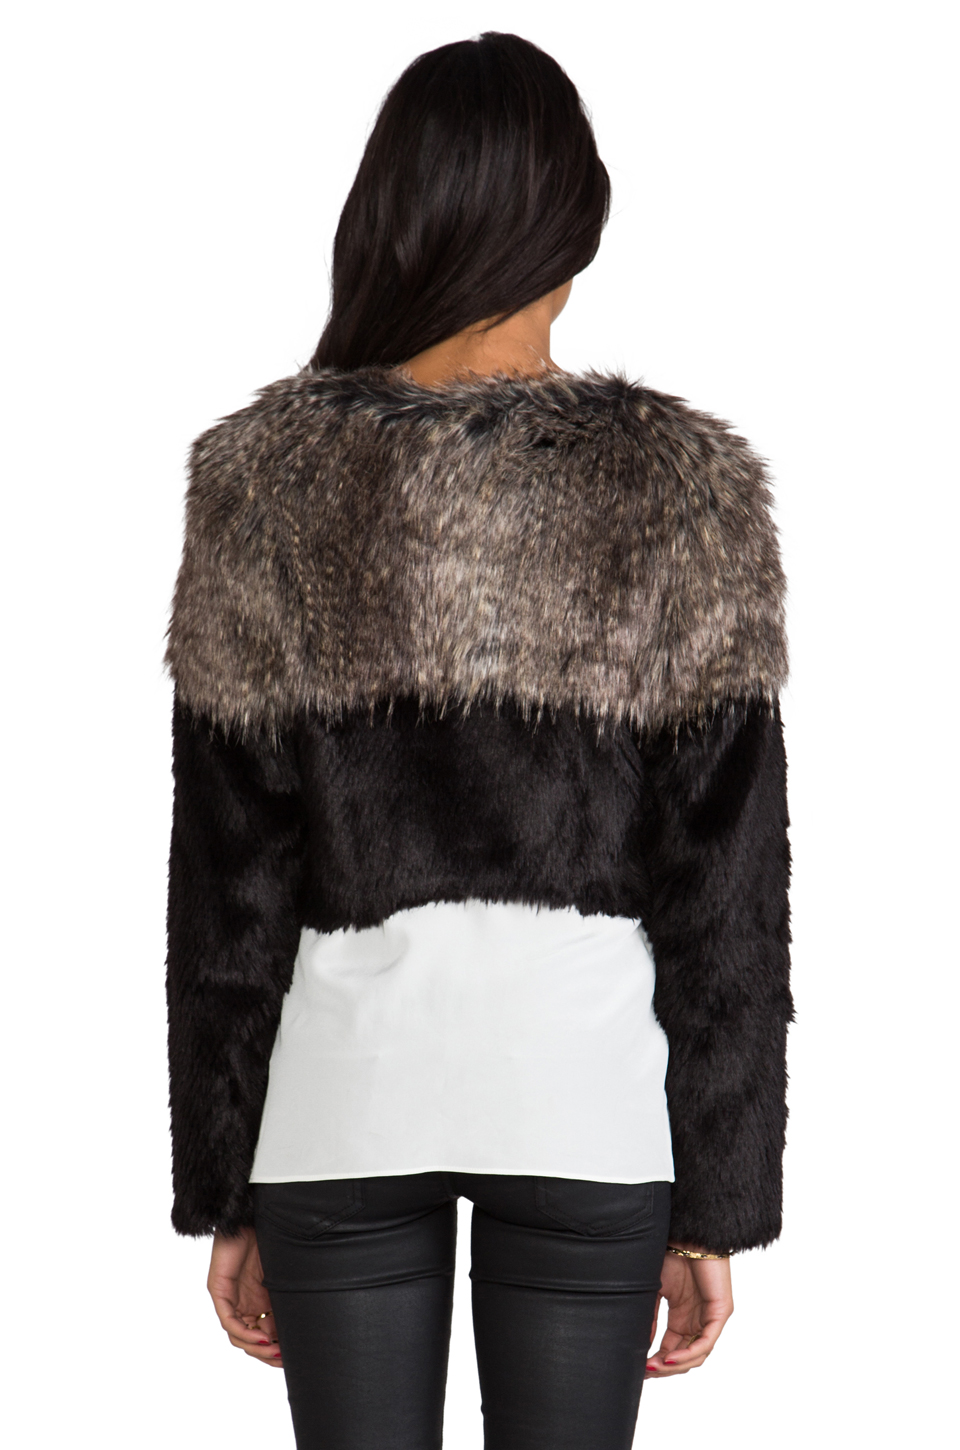 Twelfth Street By Cynthia Vincent Two Tone Chubby Faux Fur Pullover in Black | REVOLVE